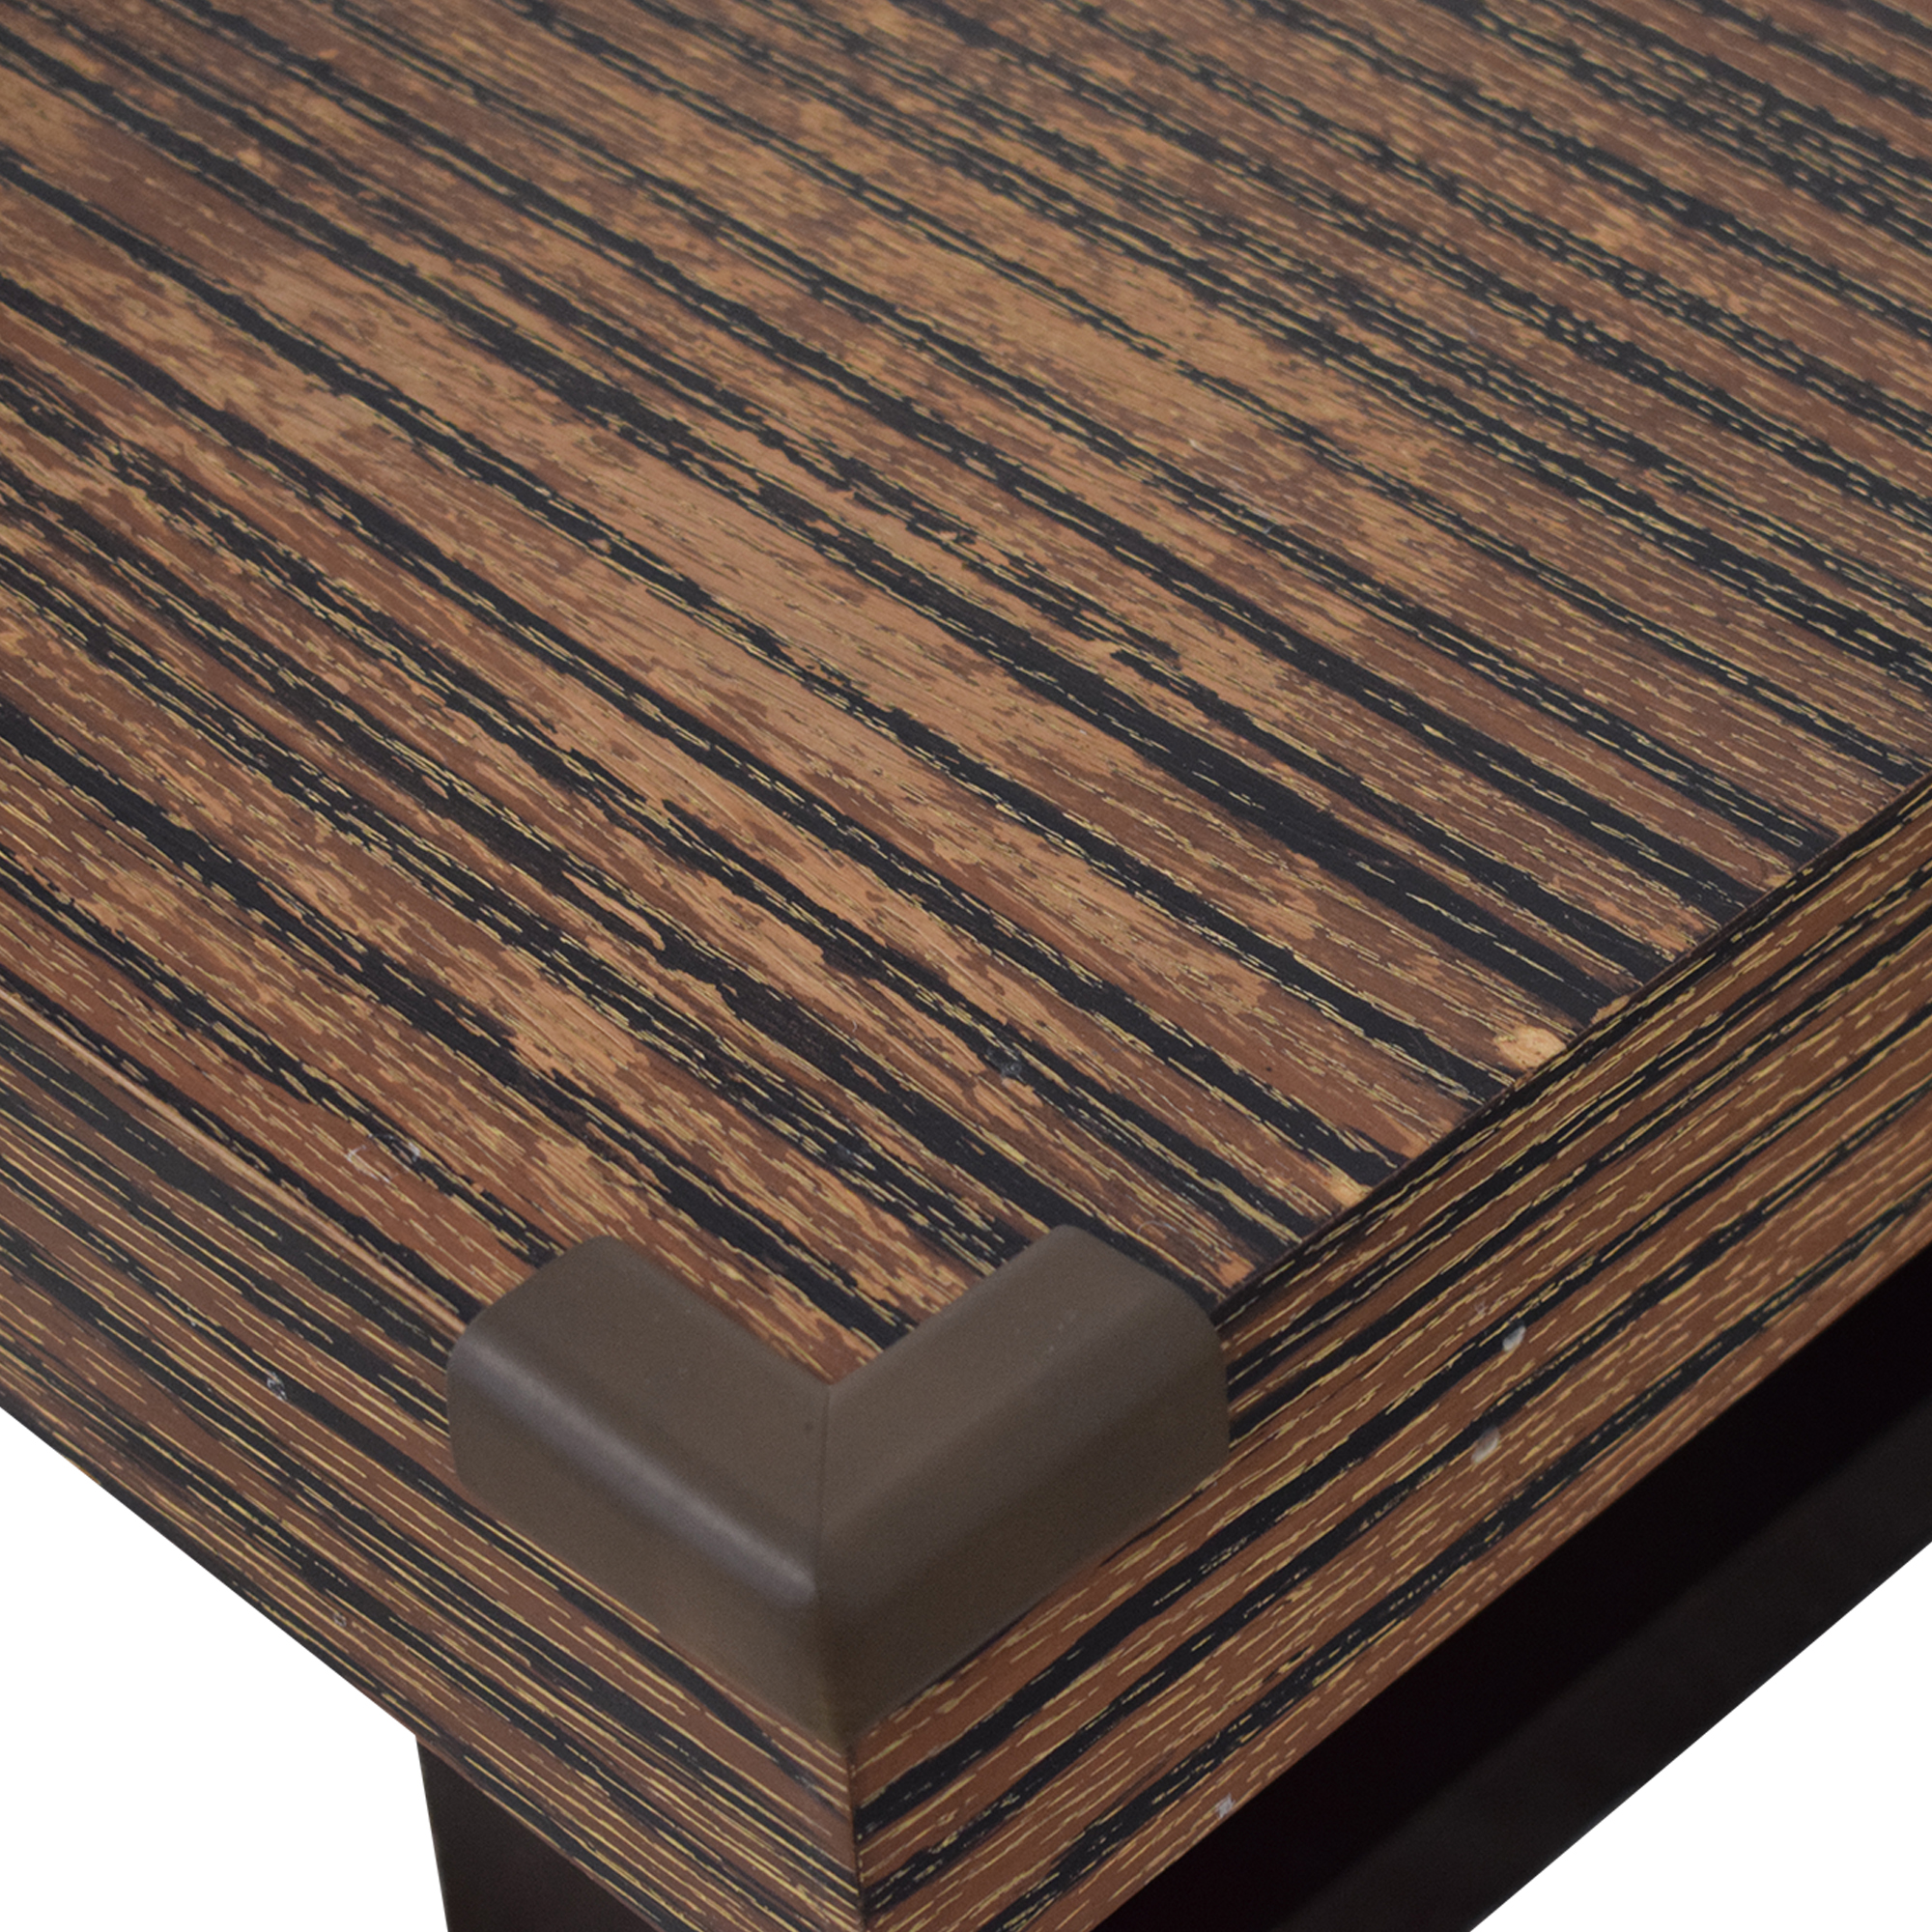 Michael Berman Limited Michael Berman Limited Trousdale Coffee Table Tables